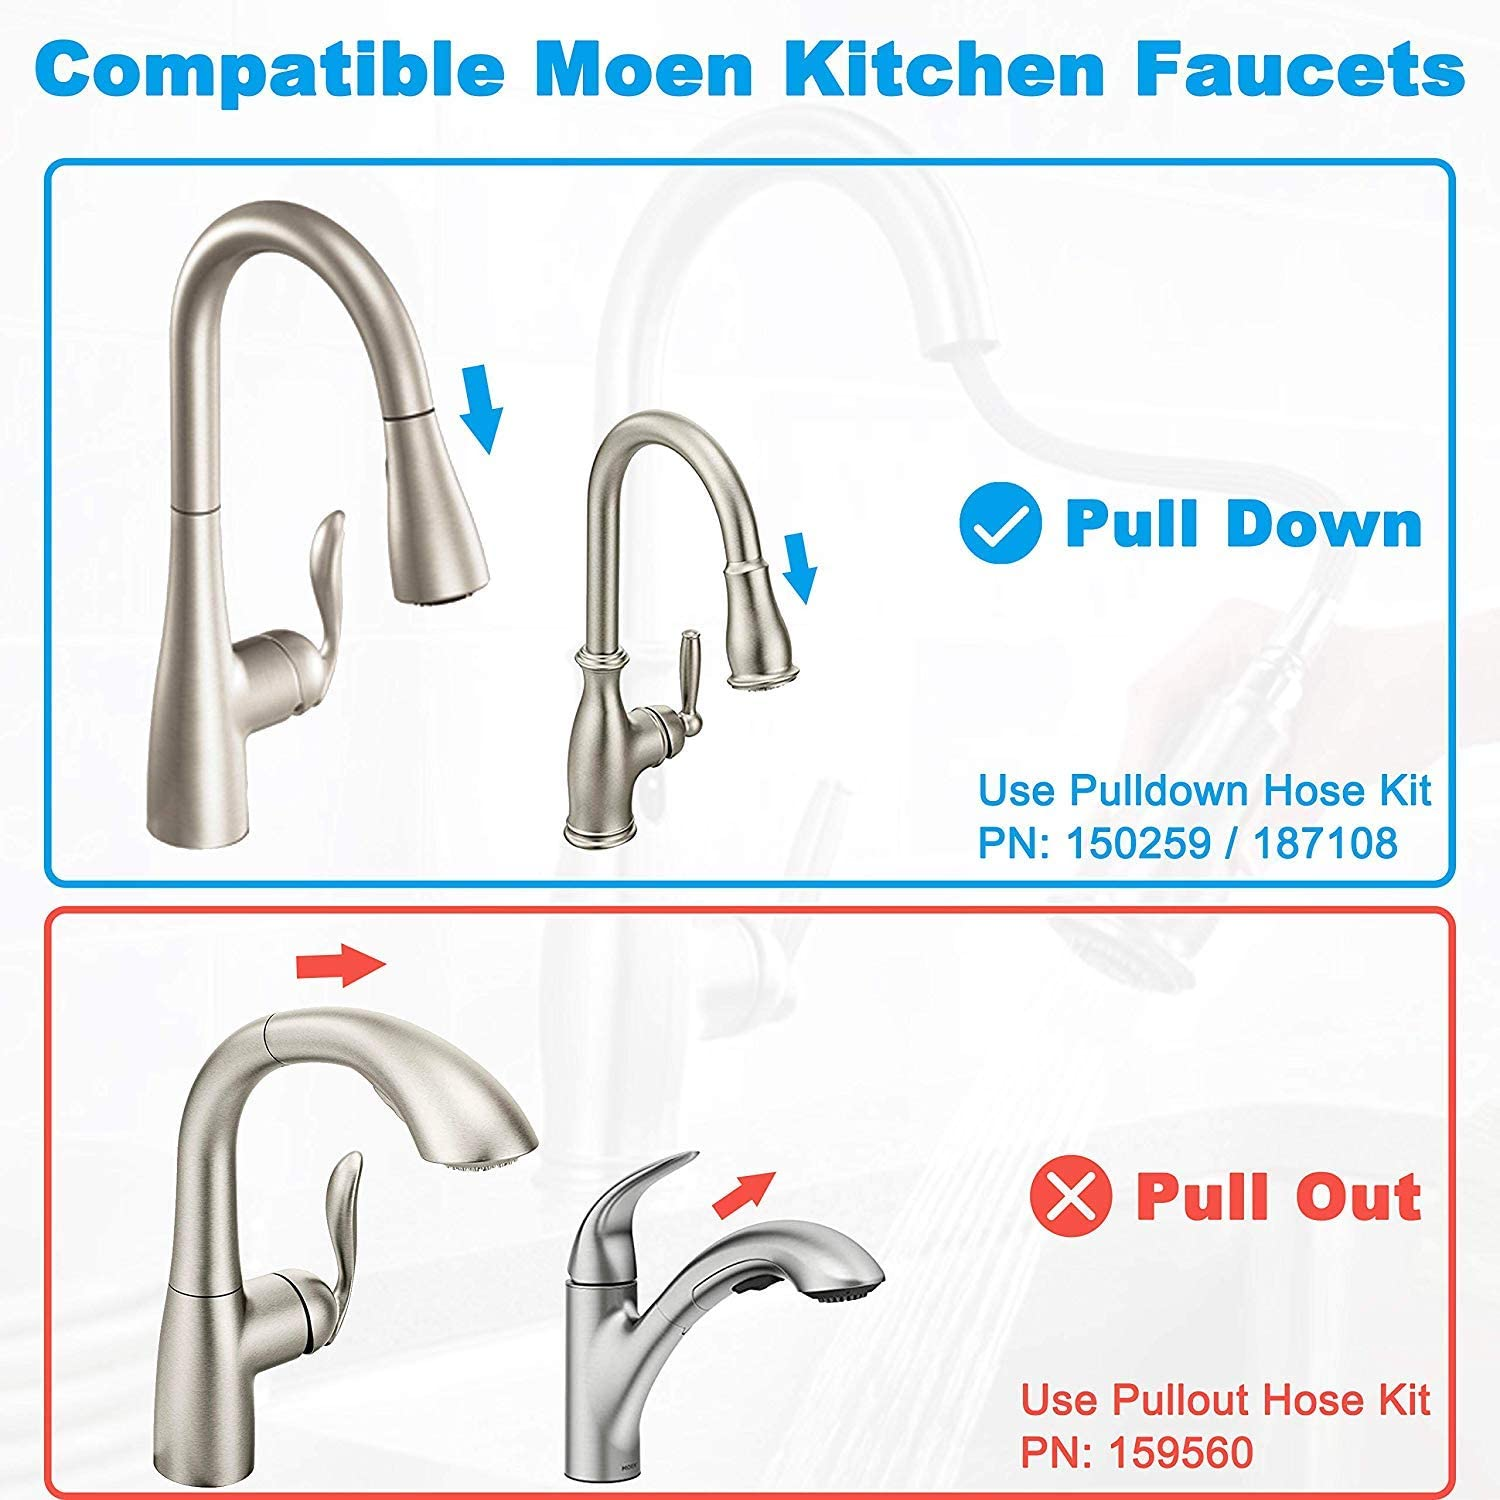 Kitchen Faucet Replacement Pe Hose Quick Connect Pull Down Kit Bathroom Fixture Kitchen Faucets Home Garden Worldenergy Ae